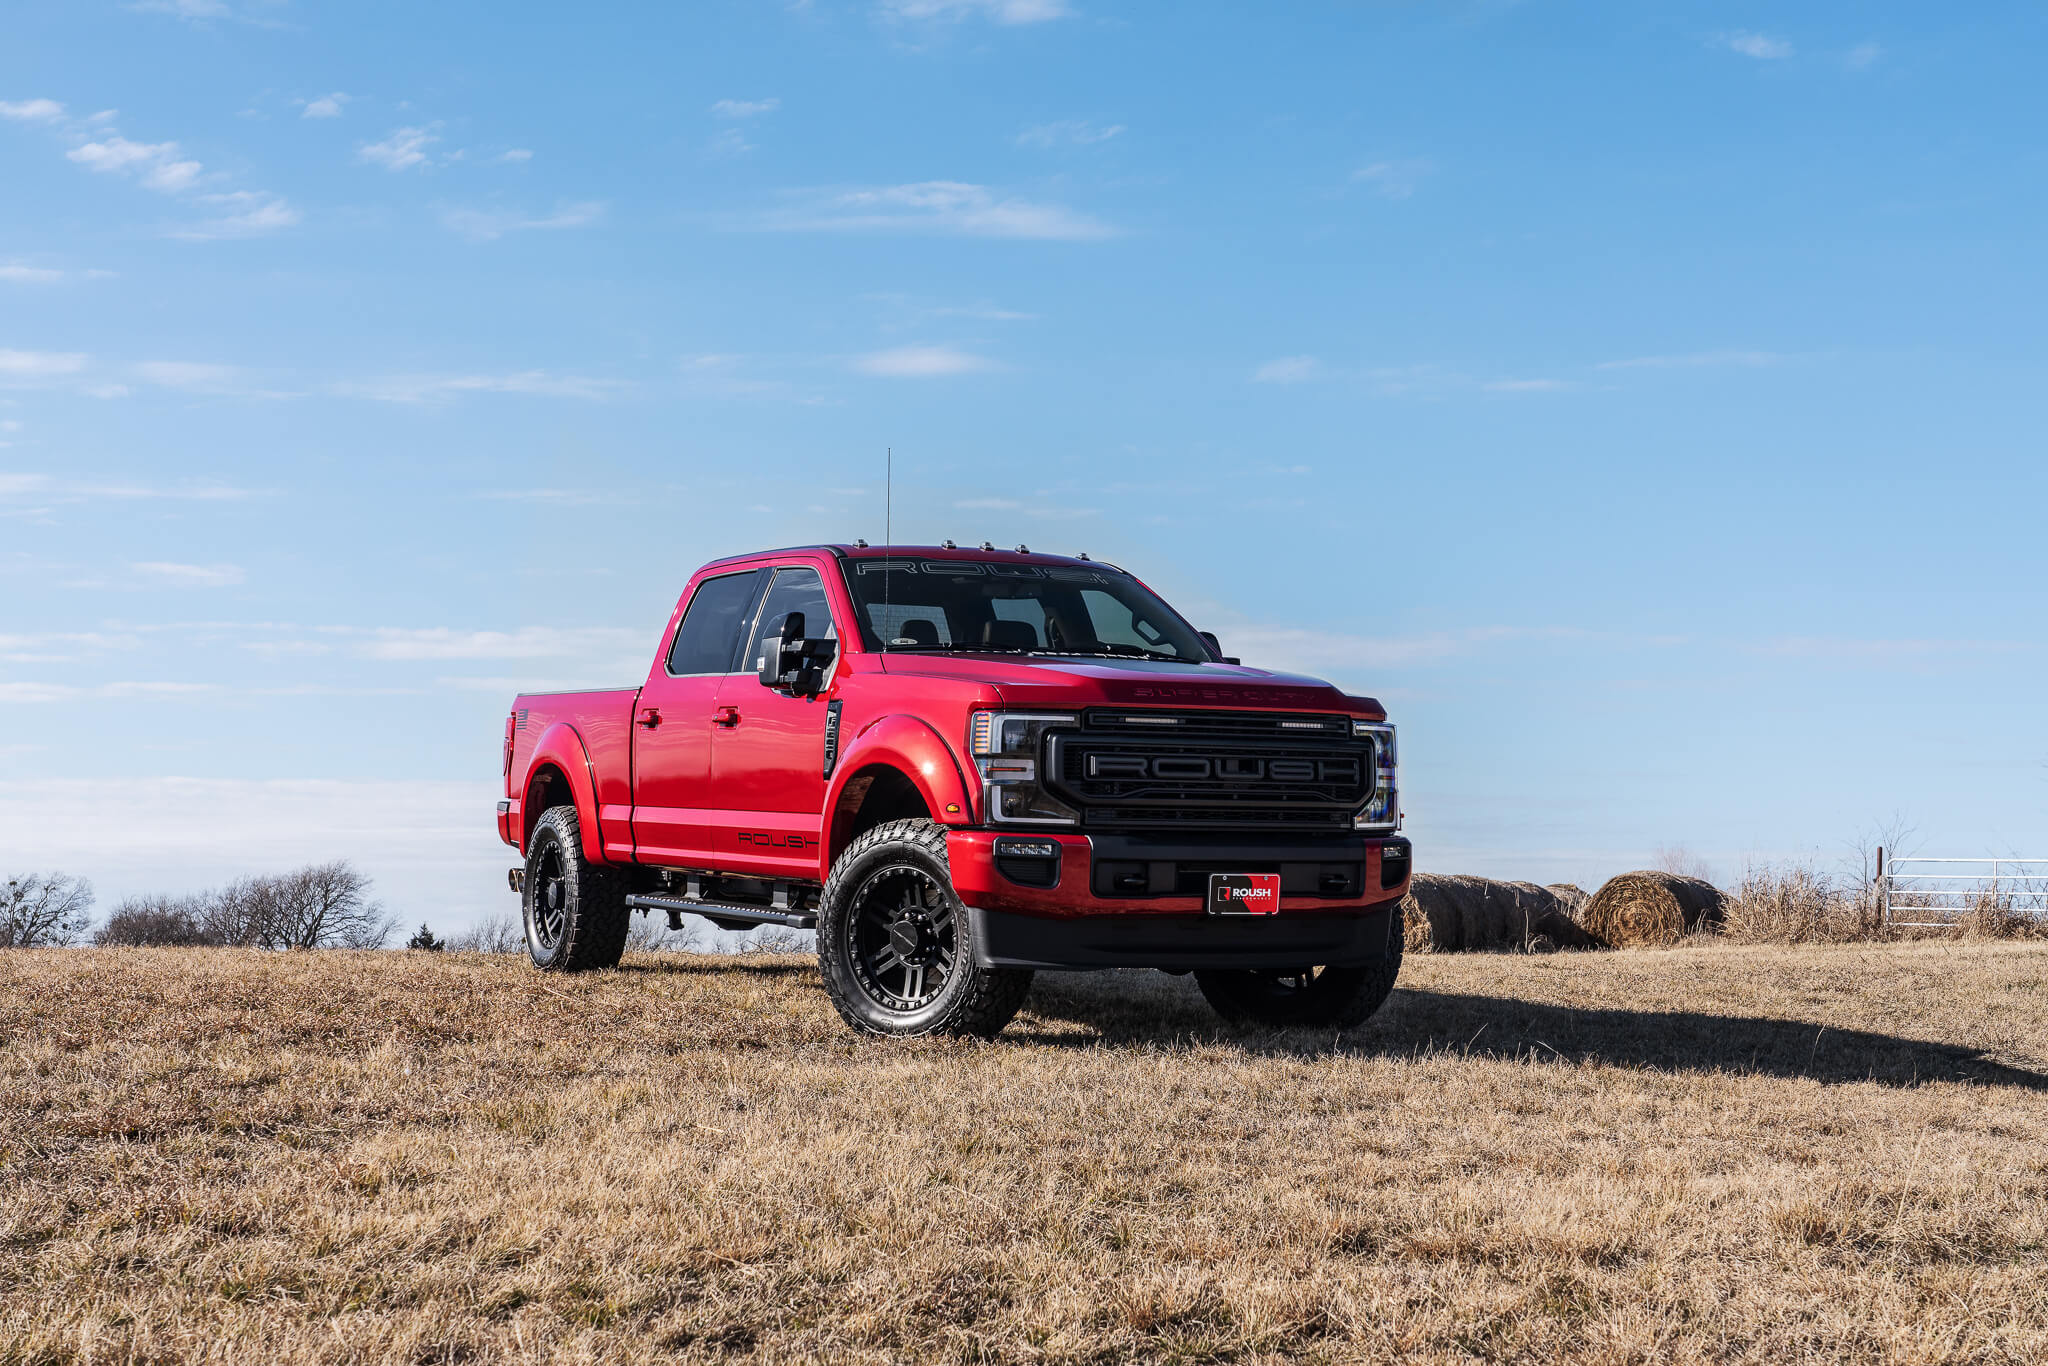 2021 ROUSH Super Duty - Relentless capability paired with legendary ROUSH styling